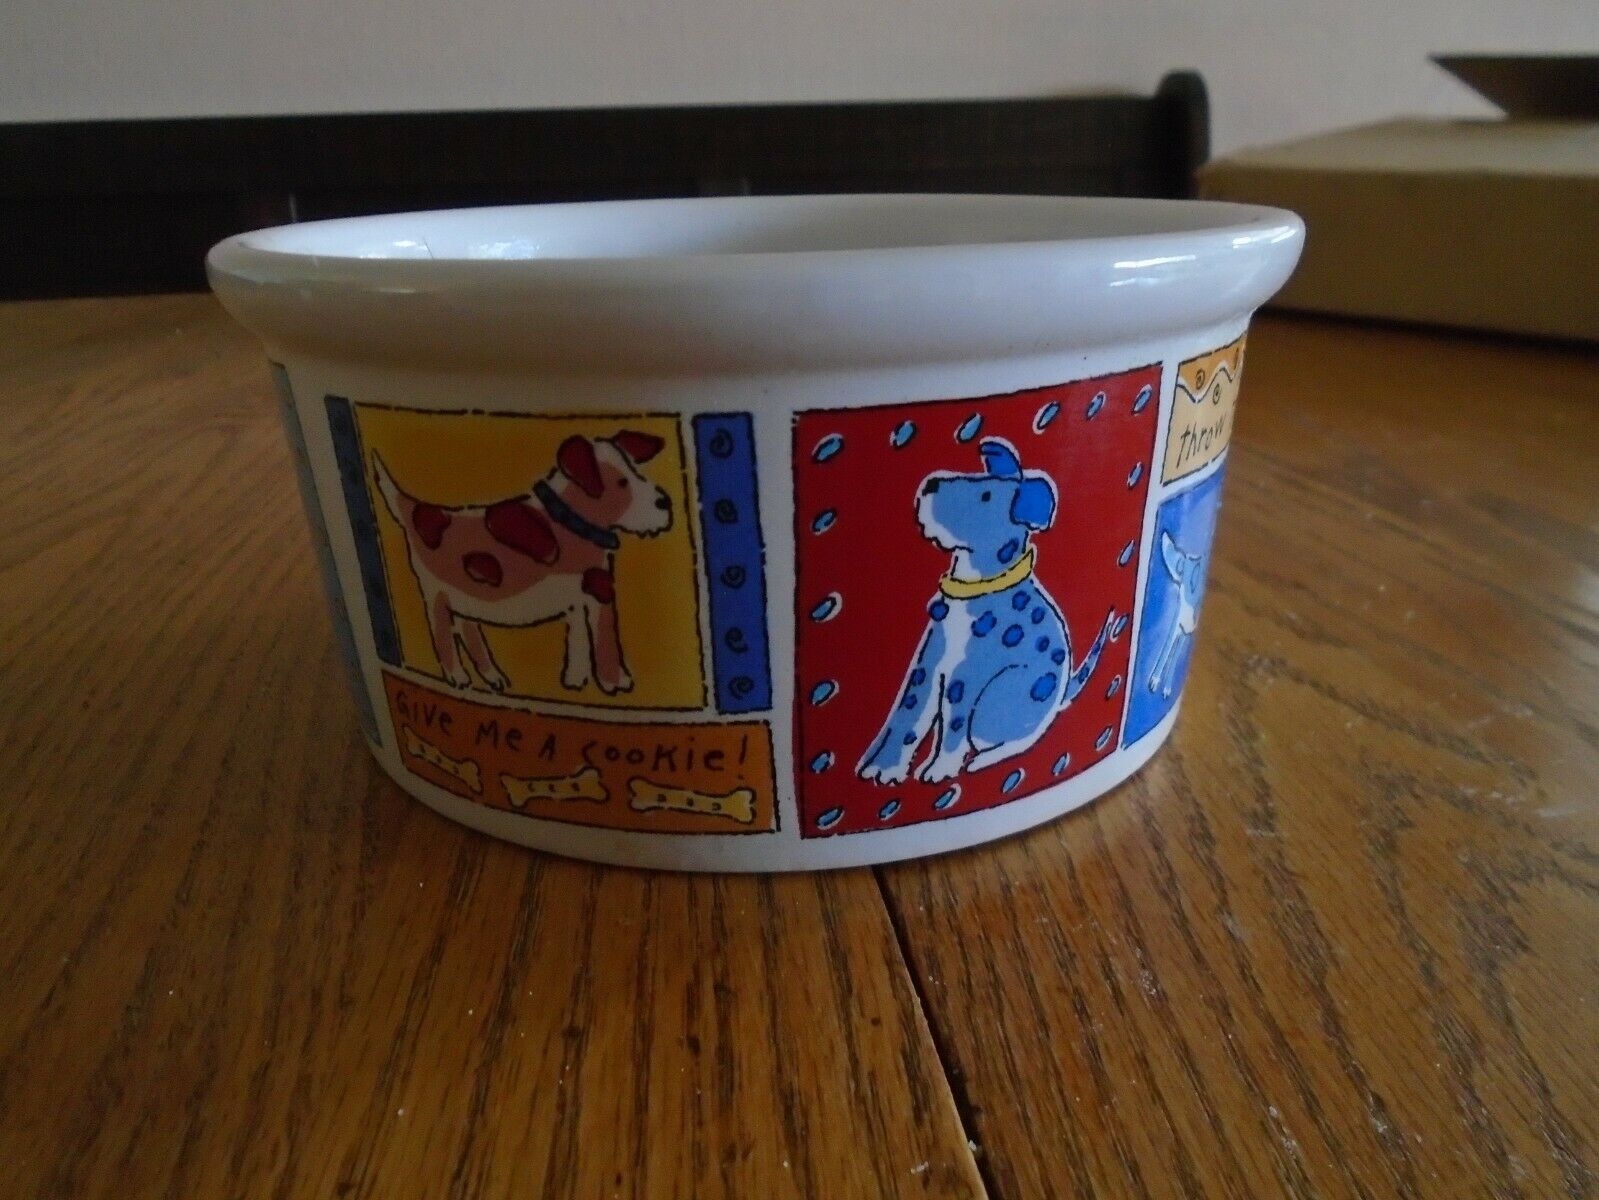 SIGNATURE Feed Me Dog Party Bowl Pet Food & Water Dishes By Riviera Van Beers